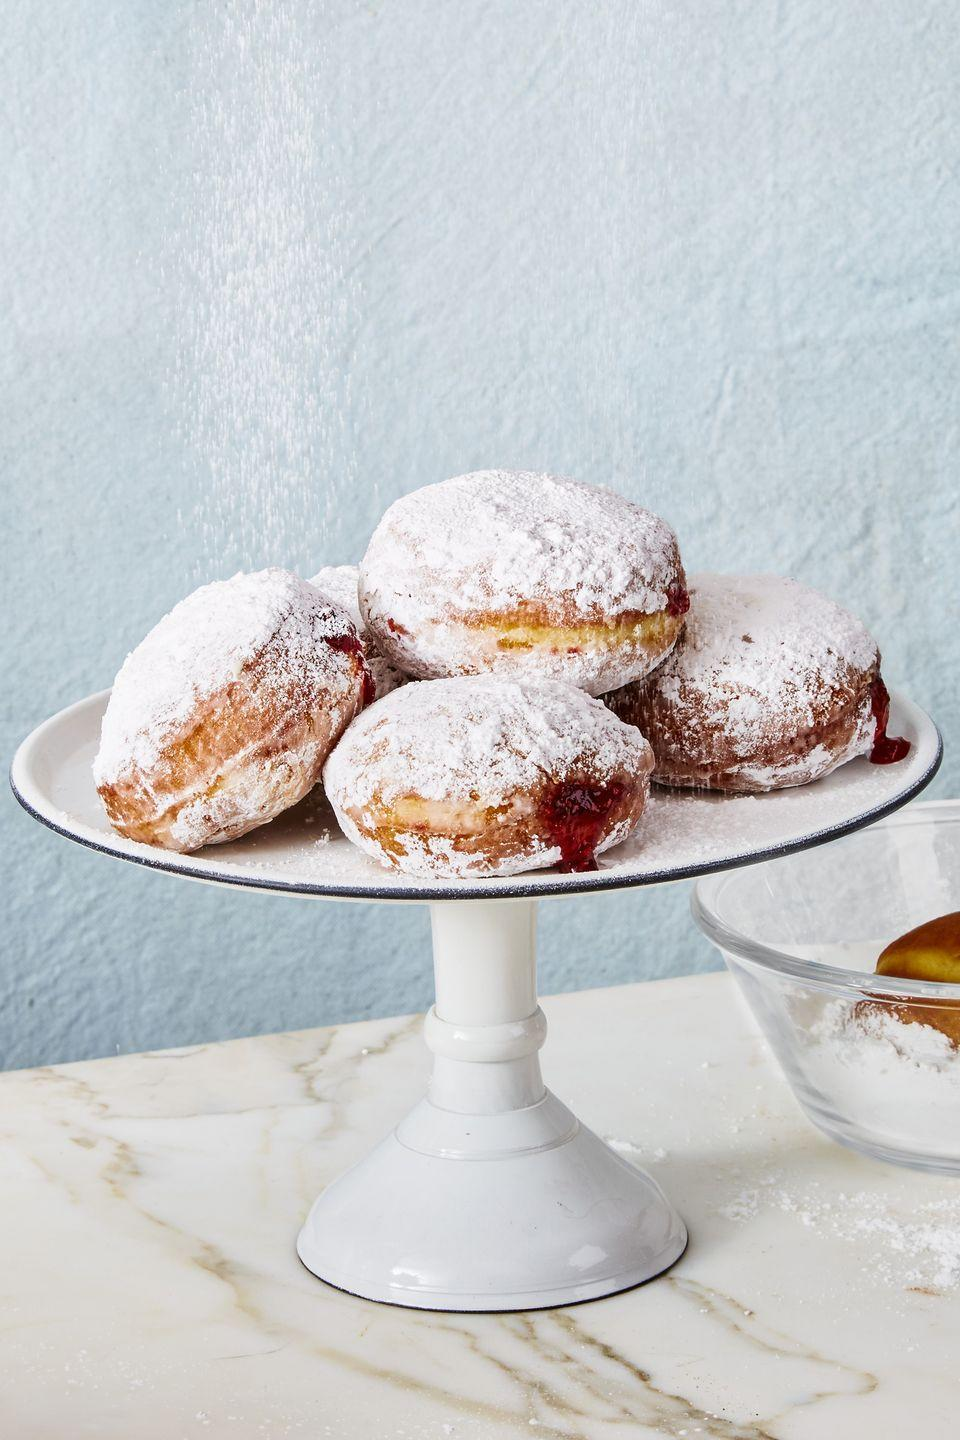 """<p>No morning coffee runs for dad this Father's Day because well, you've got it covered.</p><p><em><a href=""""https://www.goodhousekeeping.com/food-recipes/a48180/classic-jelly-donuts-recipe/"""" rel=""""nofollow noopener"""" target=""""_blank"""" data-ylk=""""slk:Get the recipe for Classic Jelly Donuts »"""" class=""""link rapid-noclick-resp"""">Get the recipe for Classic Jelly Donuts »</a></em> </p>"""